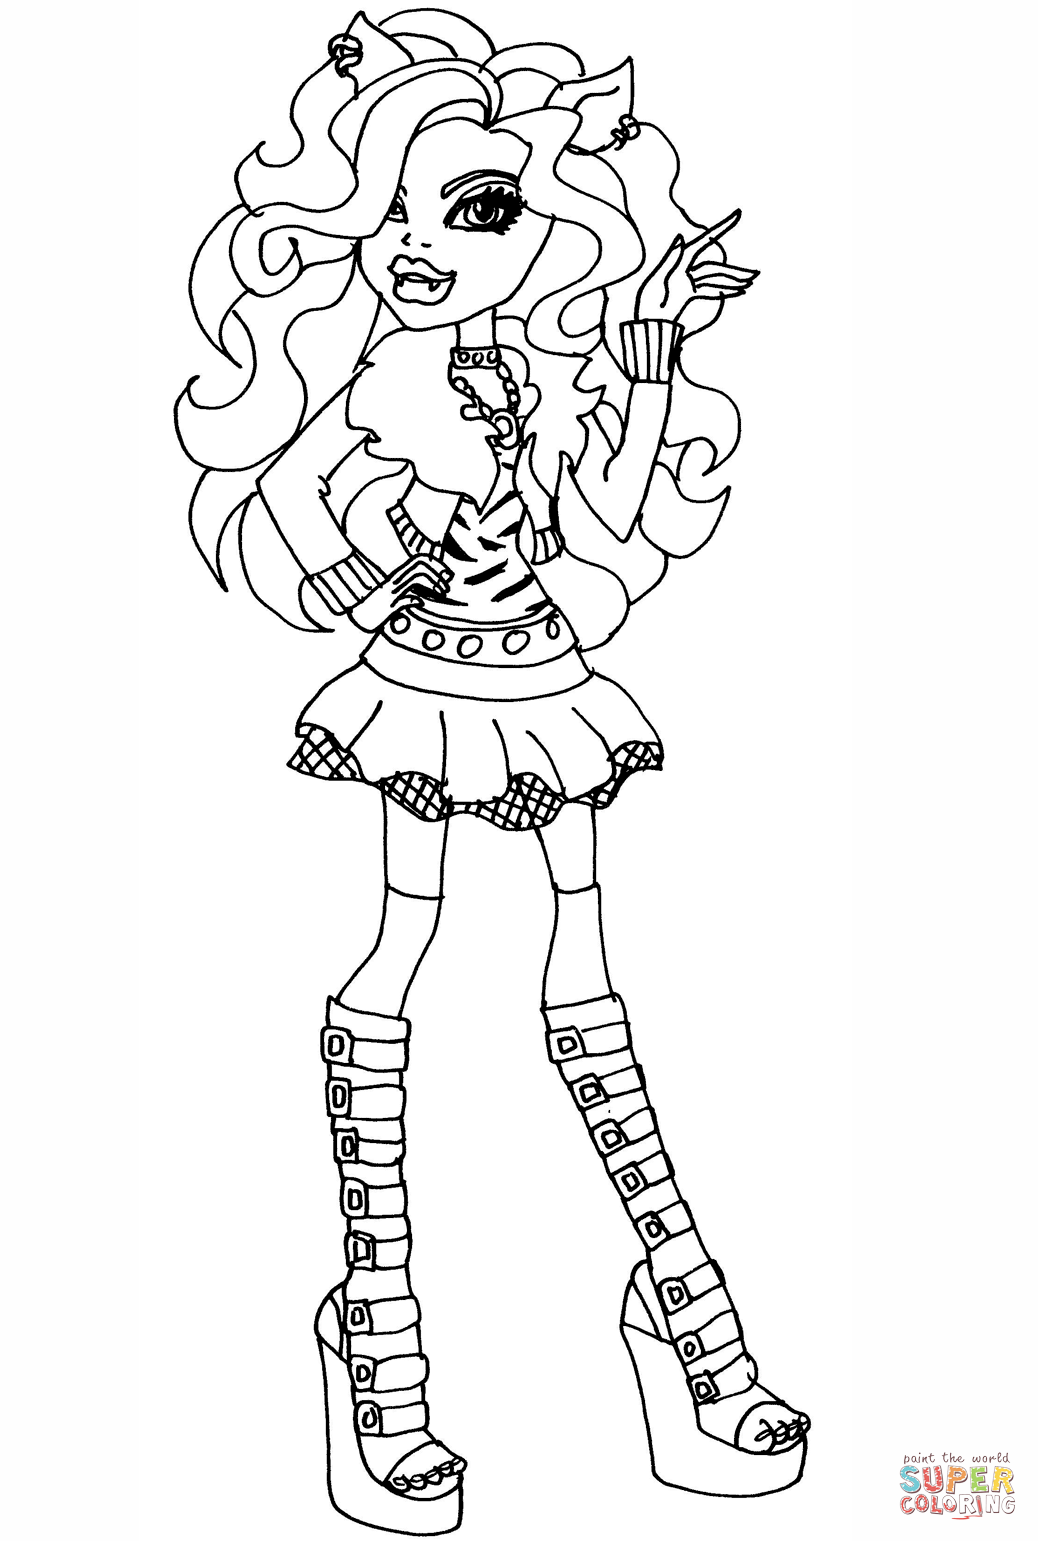 coloring book monster high monster high clawdeen wolf coloring pages coloring home book monster high coloring